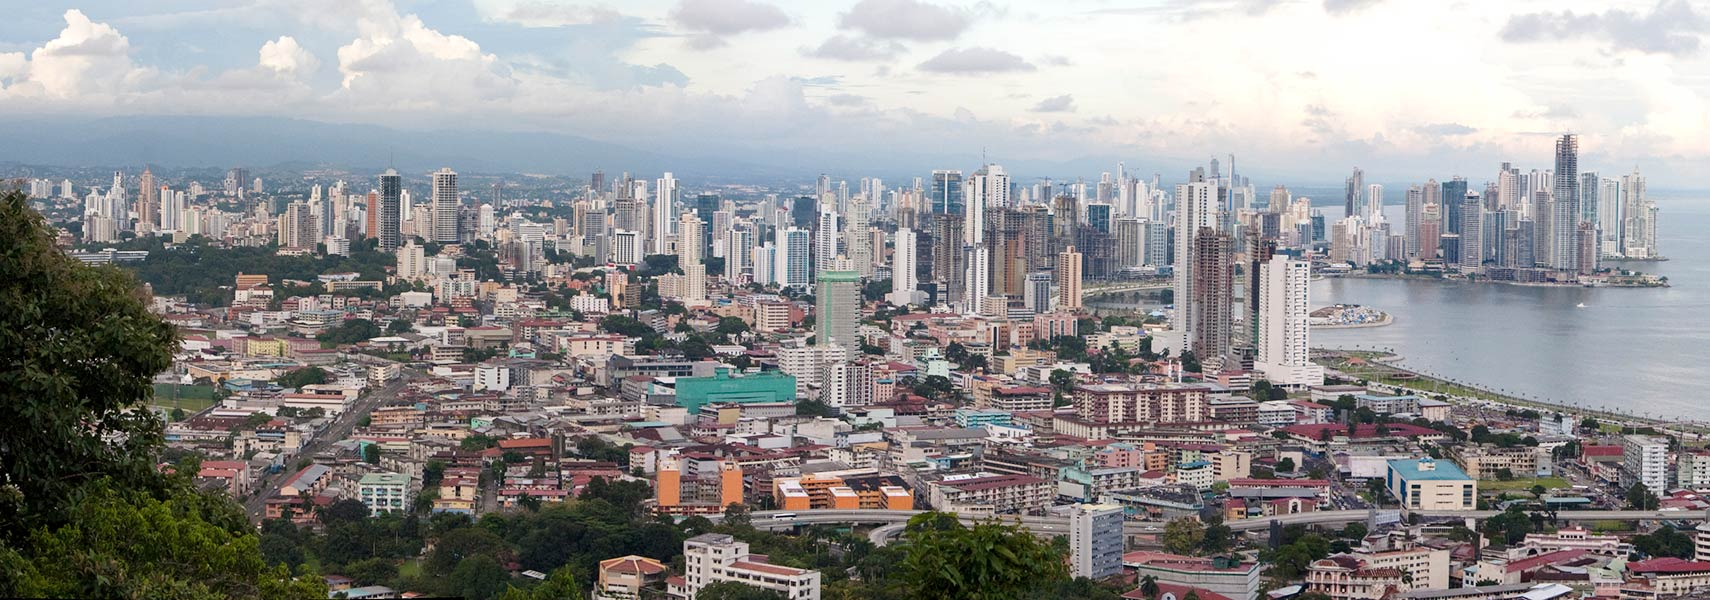 Google Map of Panama City, Panama - Nations Online Project